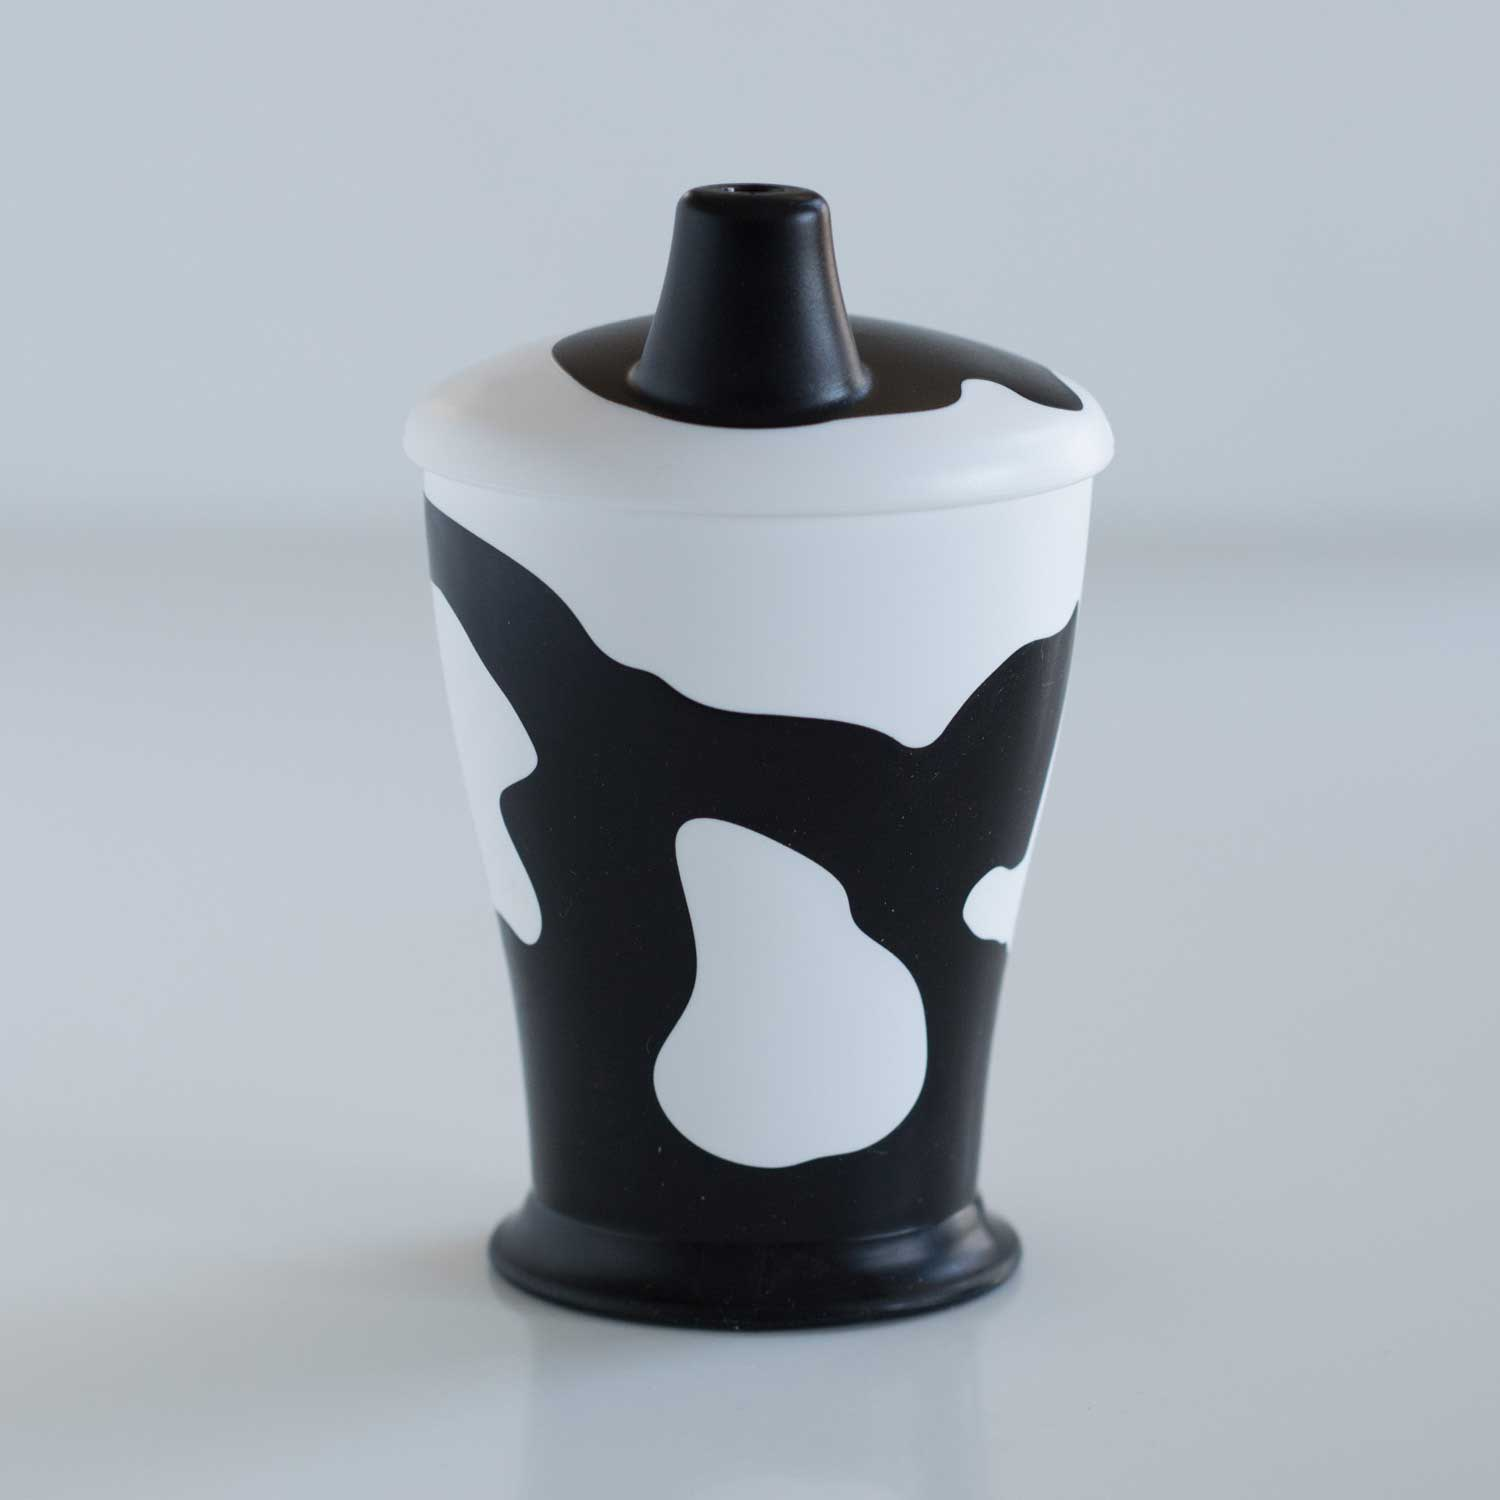 Anywayup Cup BIG Cow Cup (Beaker) - Black & White